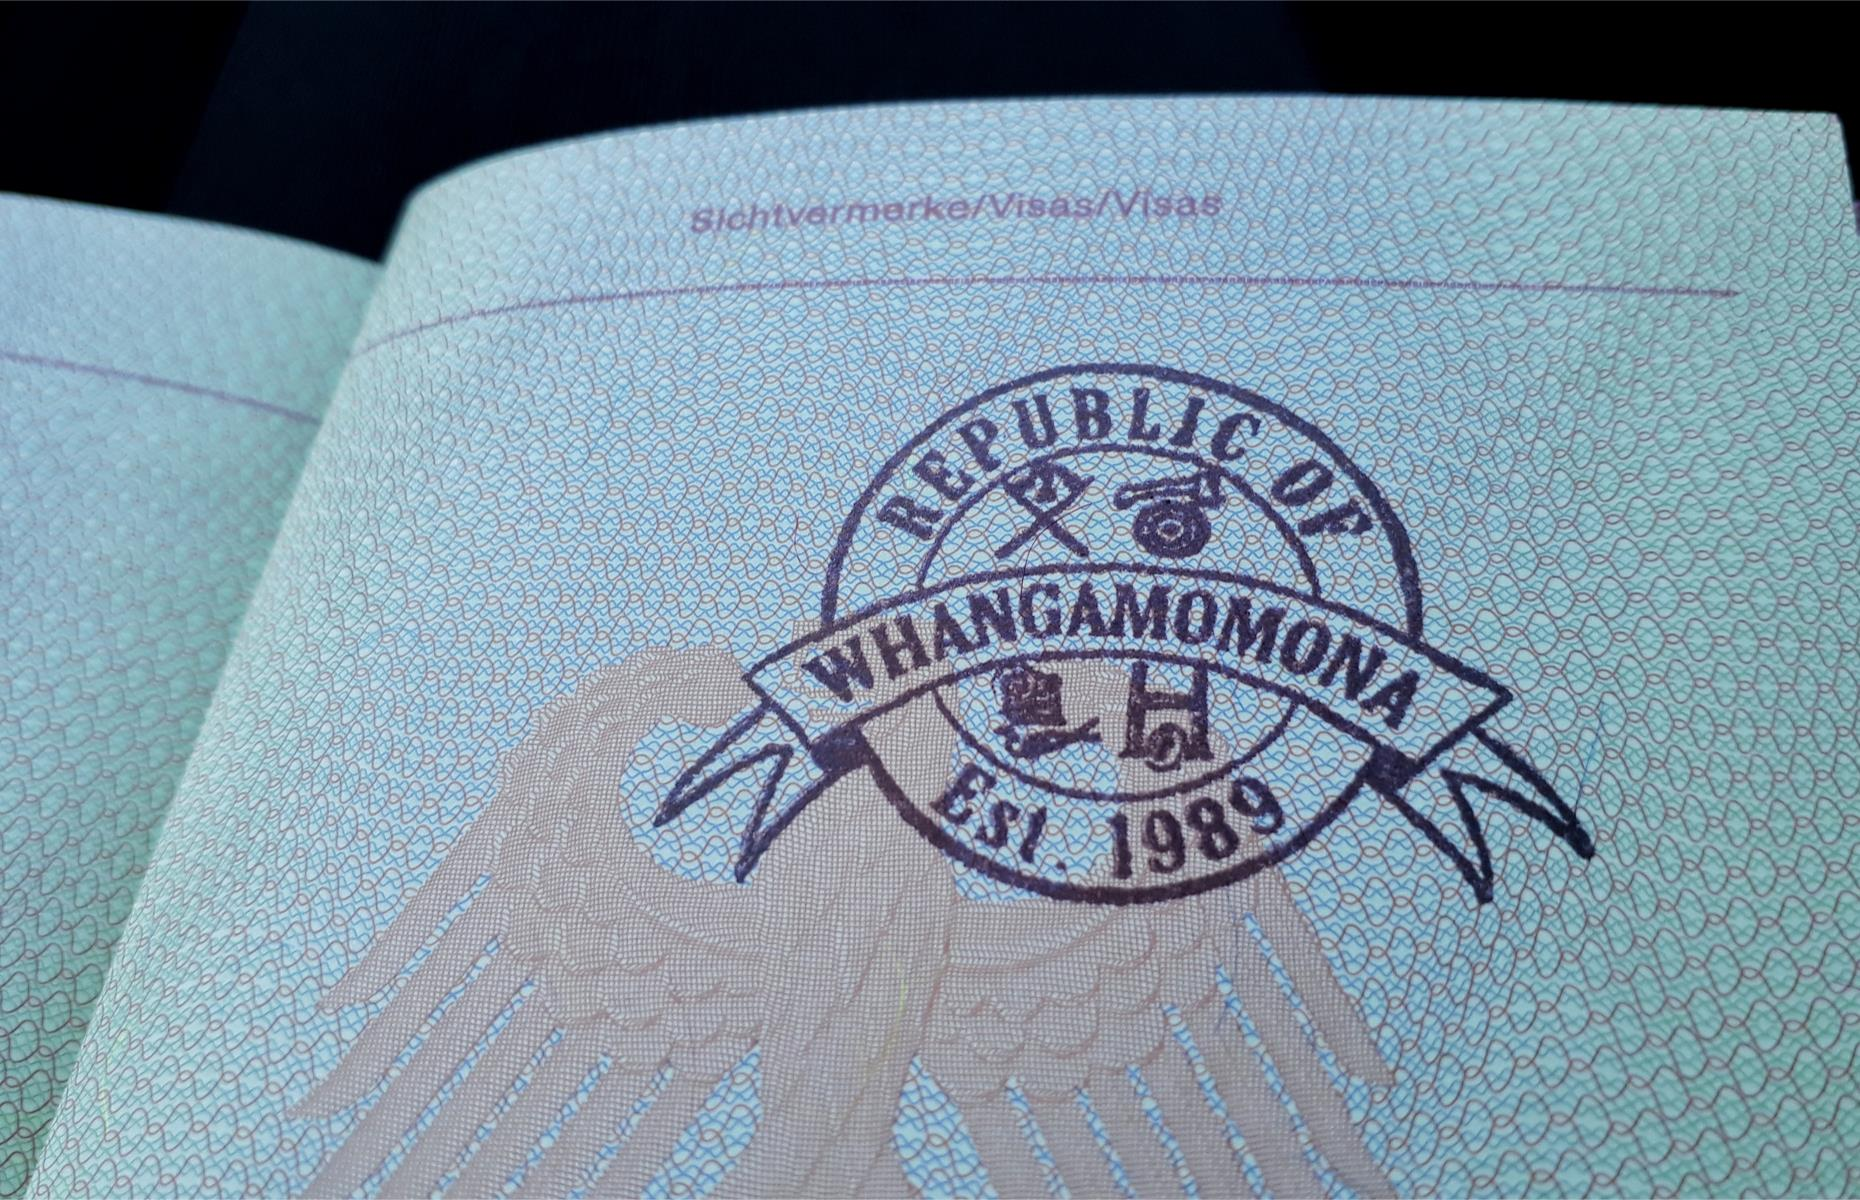 Slide 8 of 26: Passports and passport stamps are issued to ensure safe travel through Whangamomona. The quirky town can be reached by following the Forgotten World State Highway, 45 minutes east of Stratford. Discover secrets of the world's passport stamps.